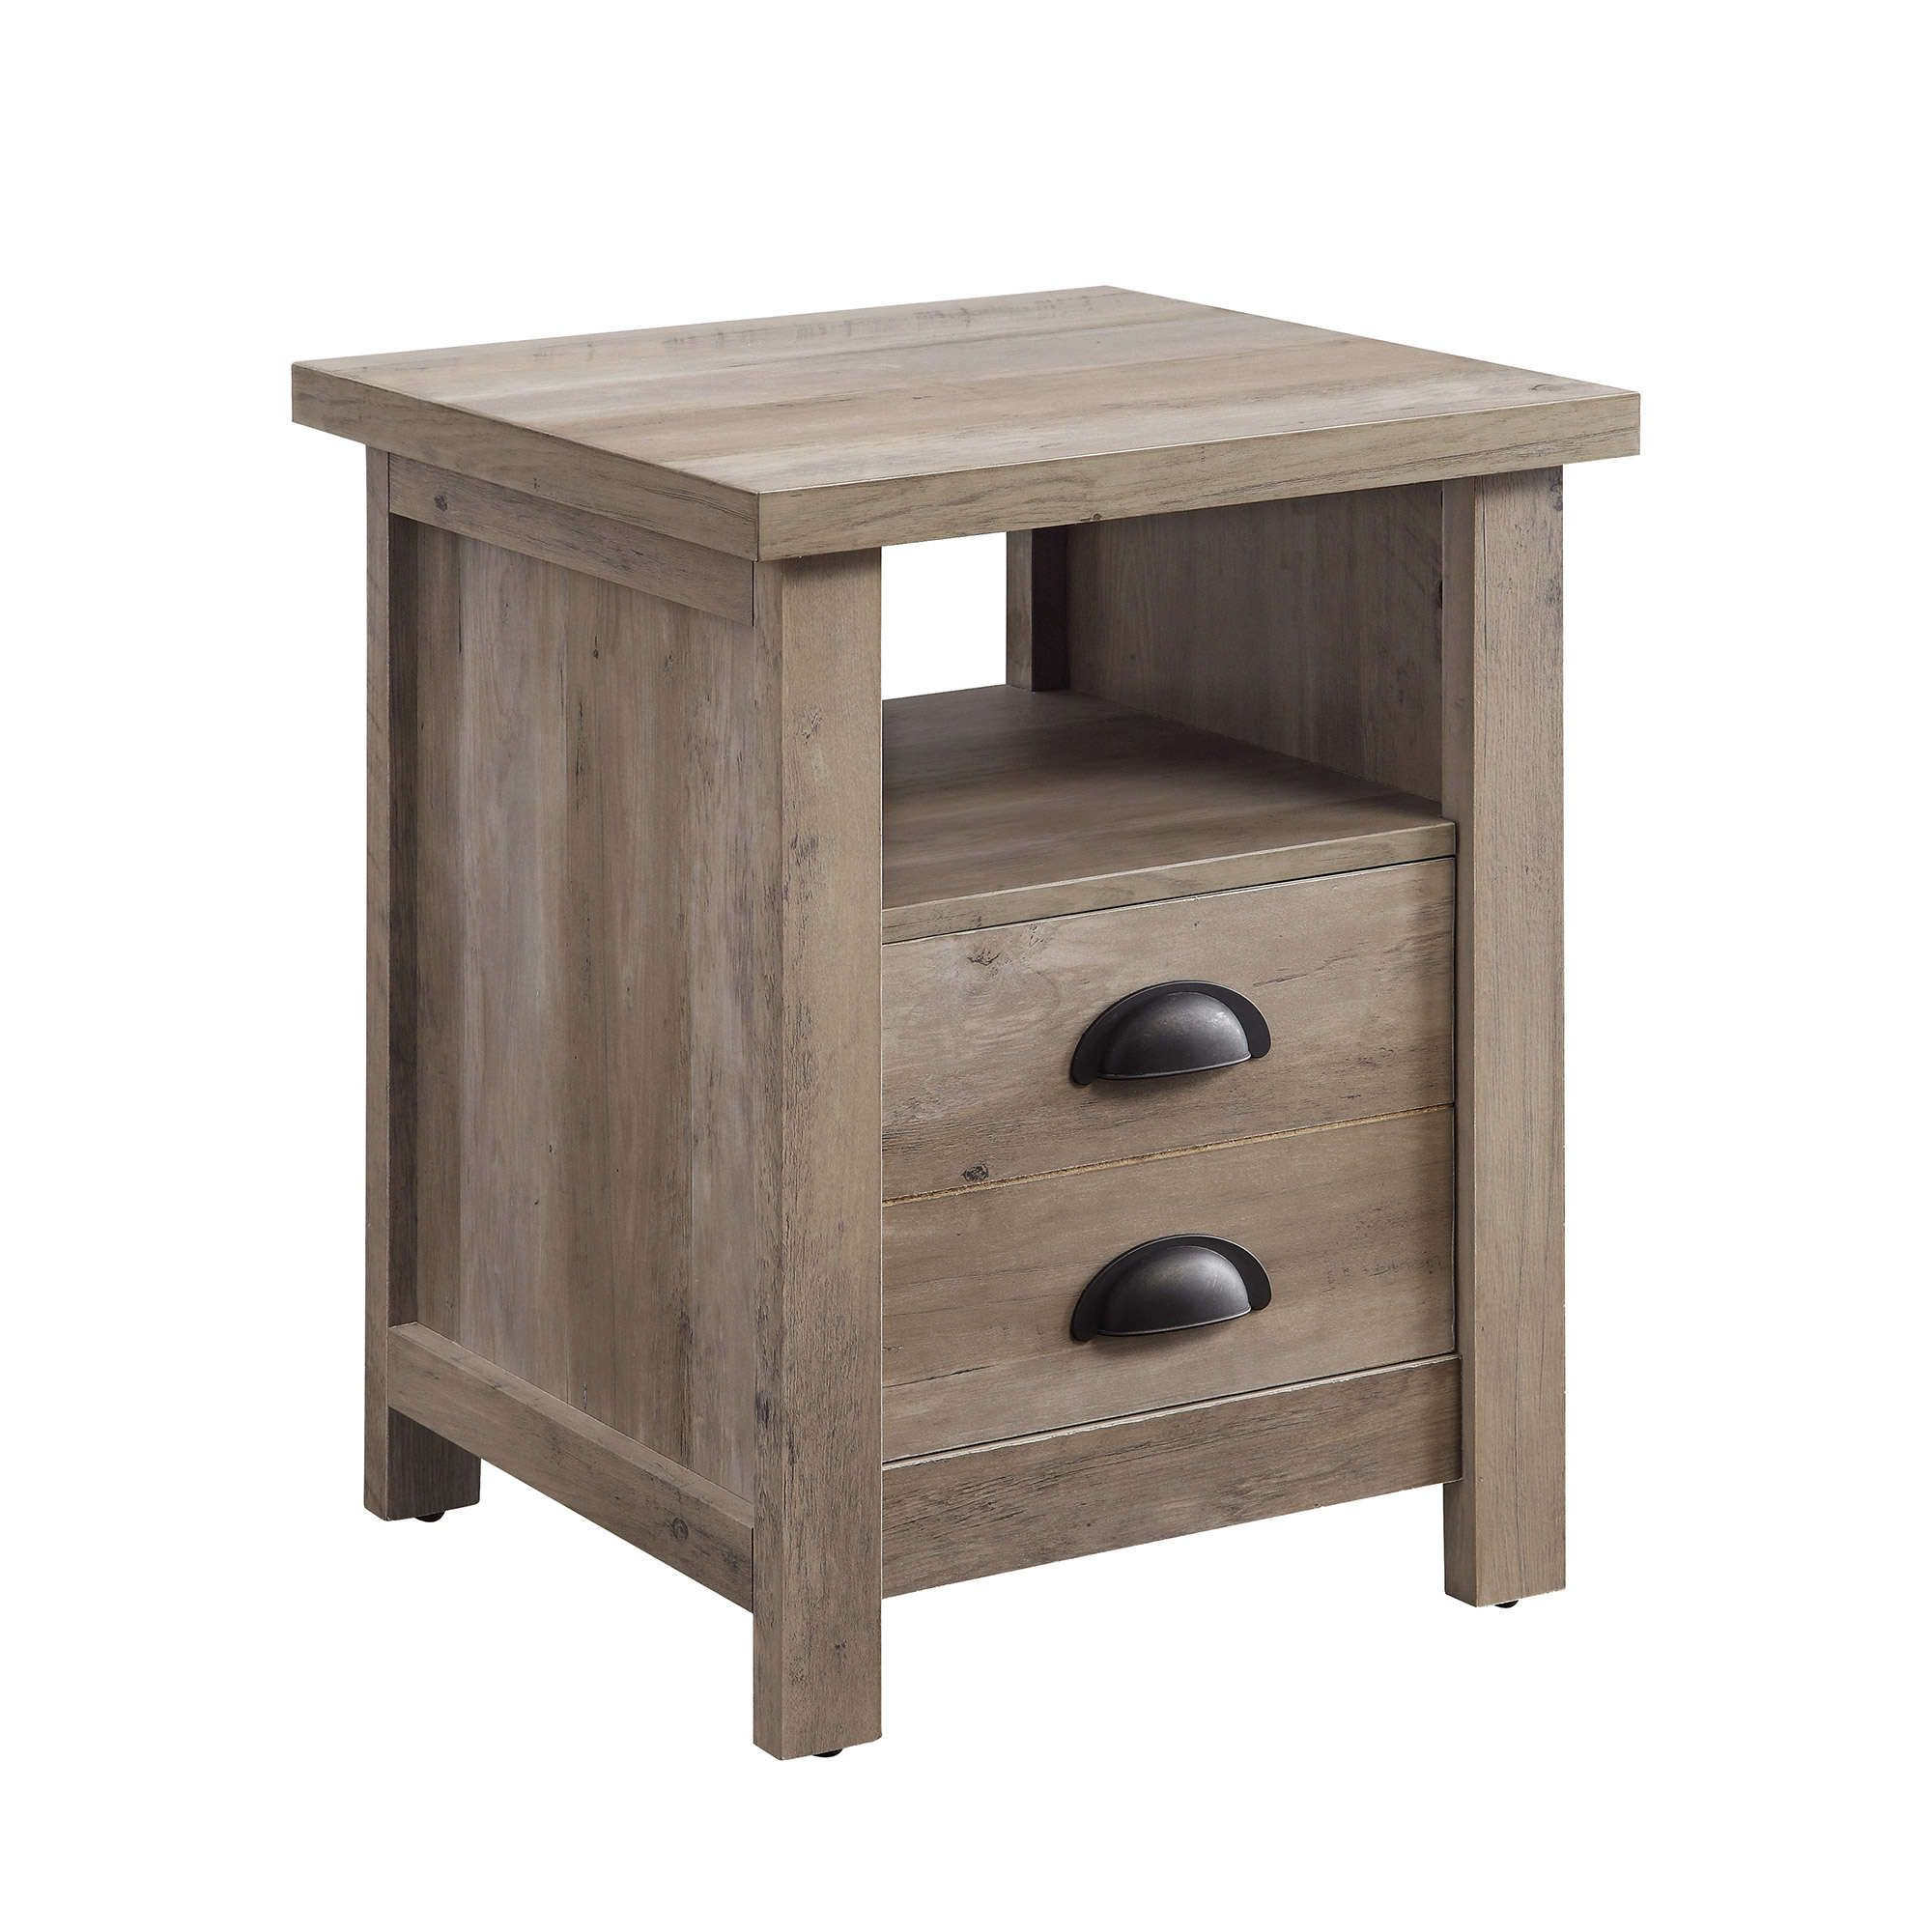 Home Farmhouse end tables, Rustic nightstand, Wood